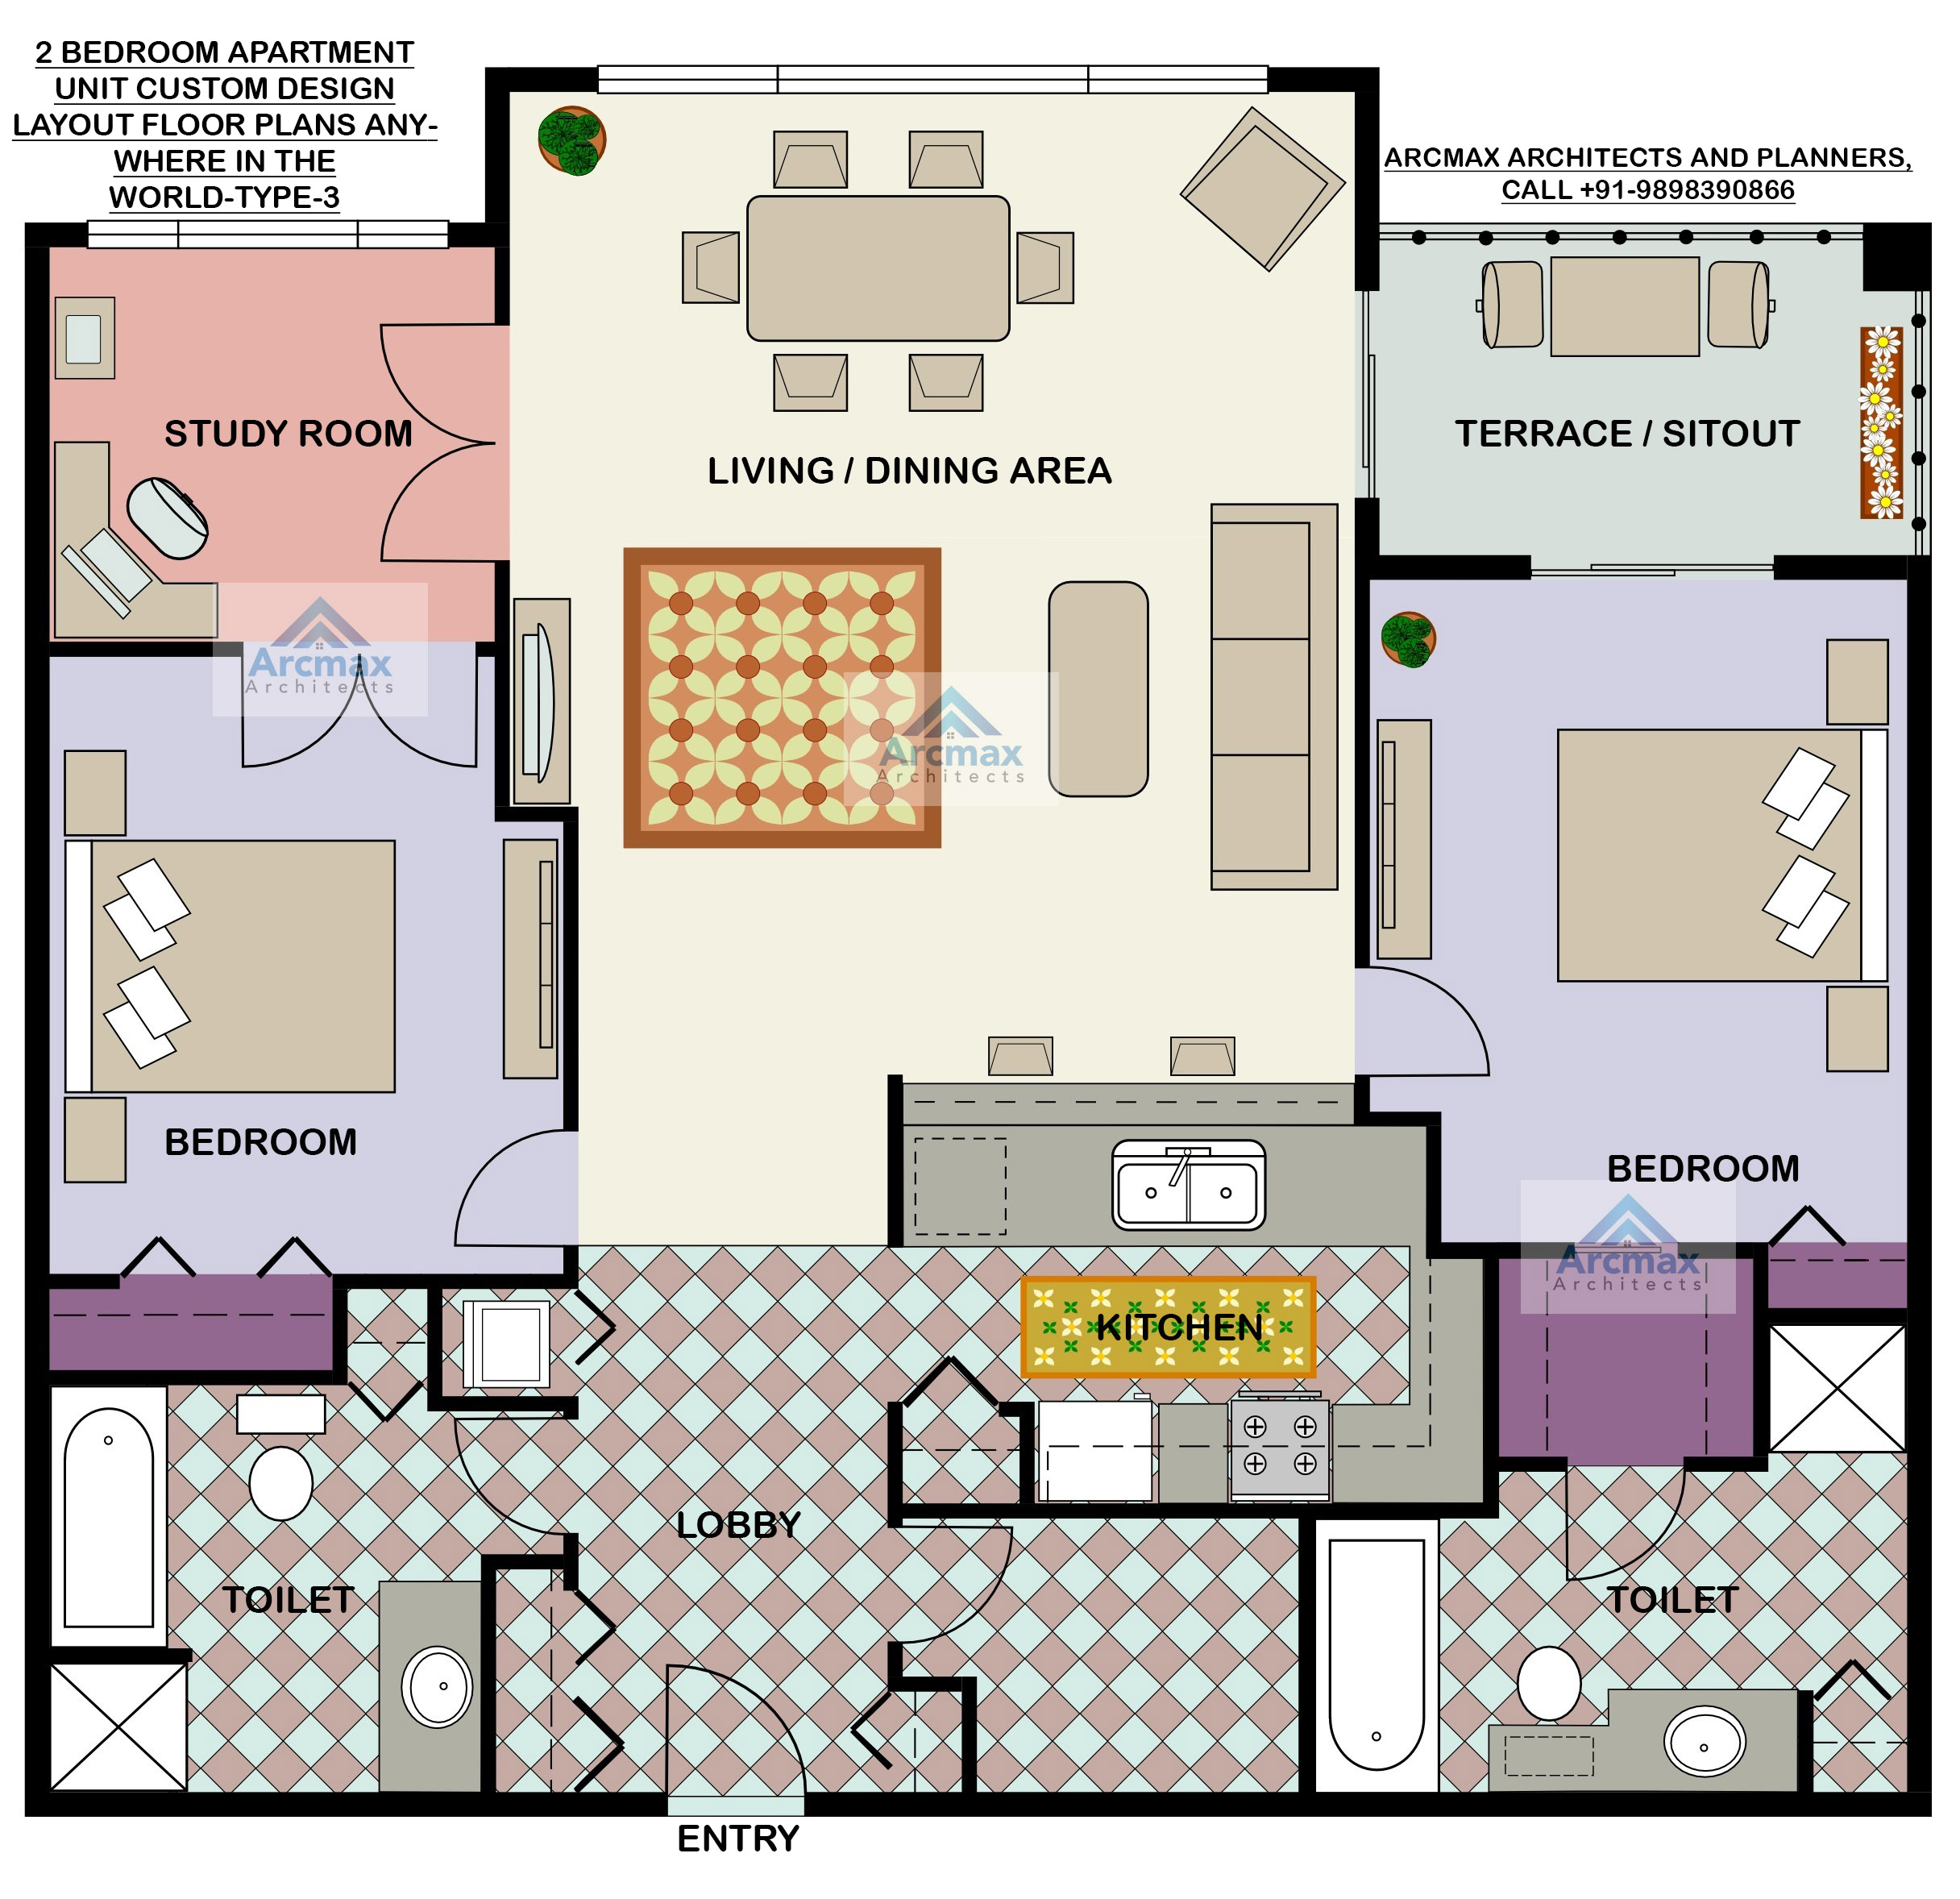 2 Bedroom Apartment Plans: Home Plans And Residence Plans